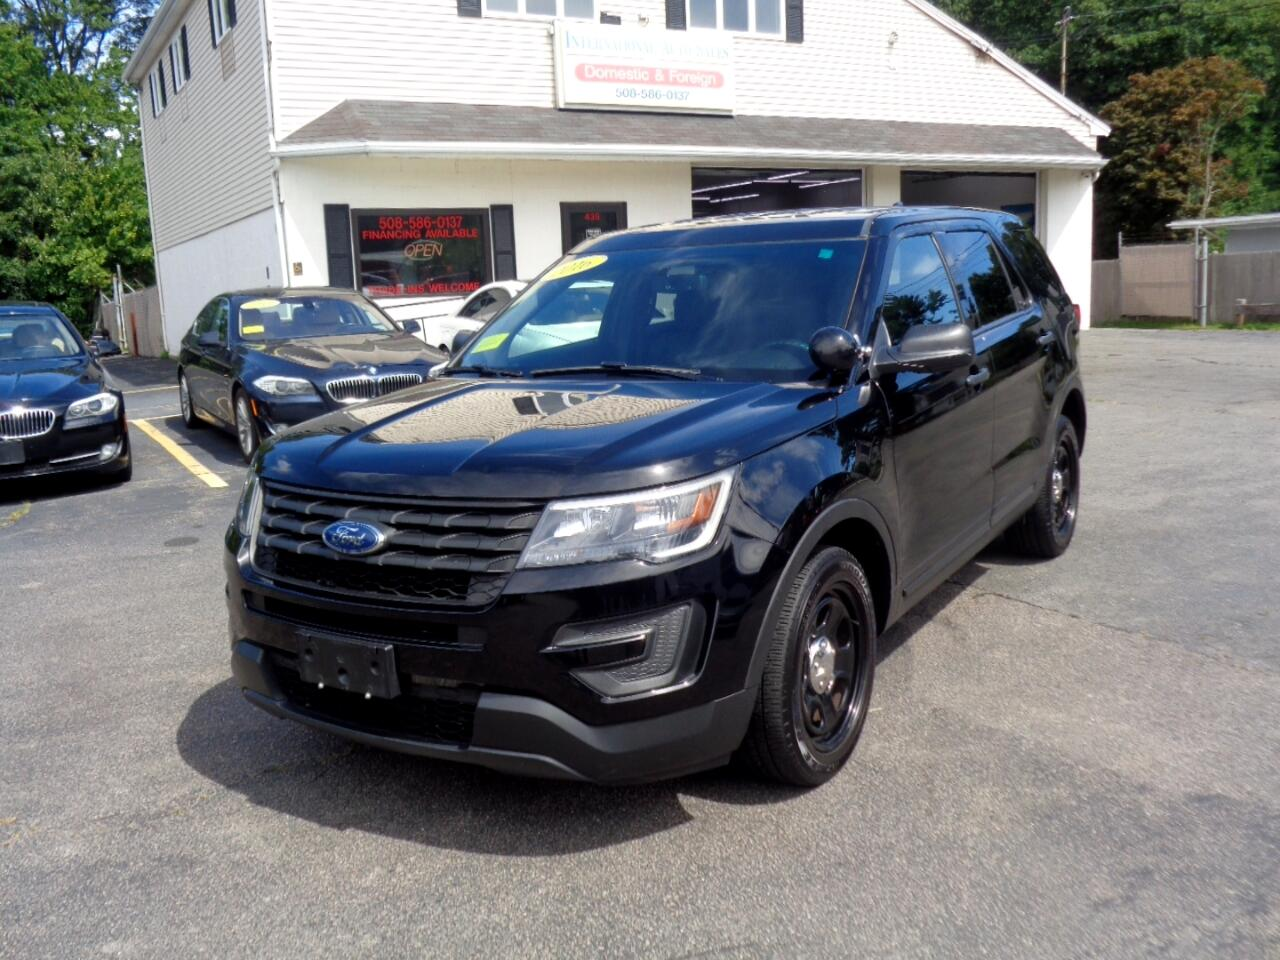 2016 Ford Explorer Police AWD